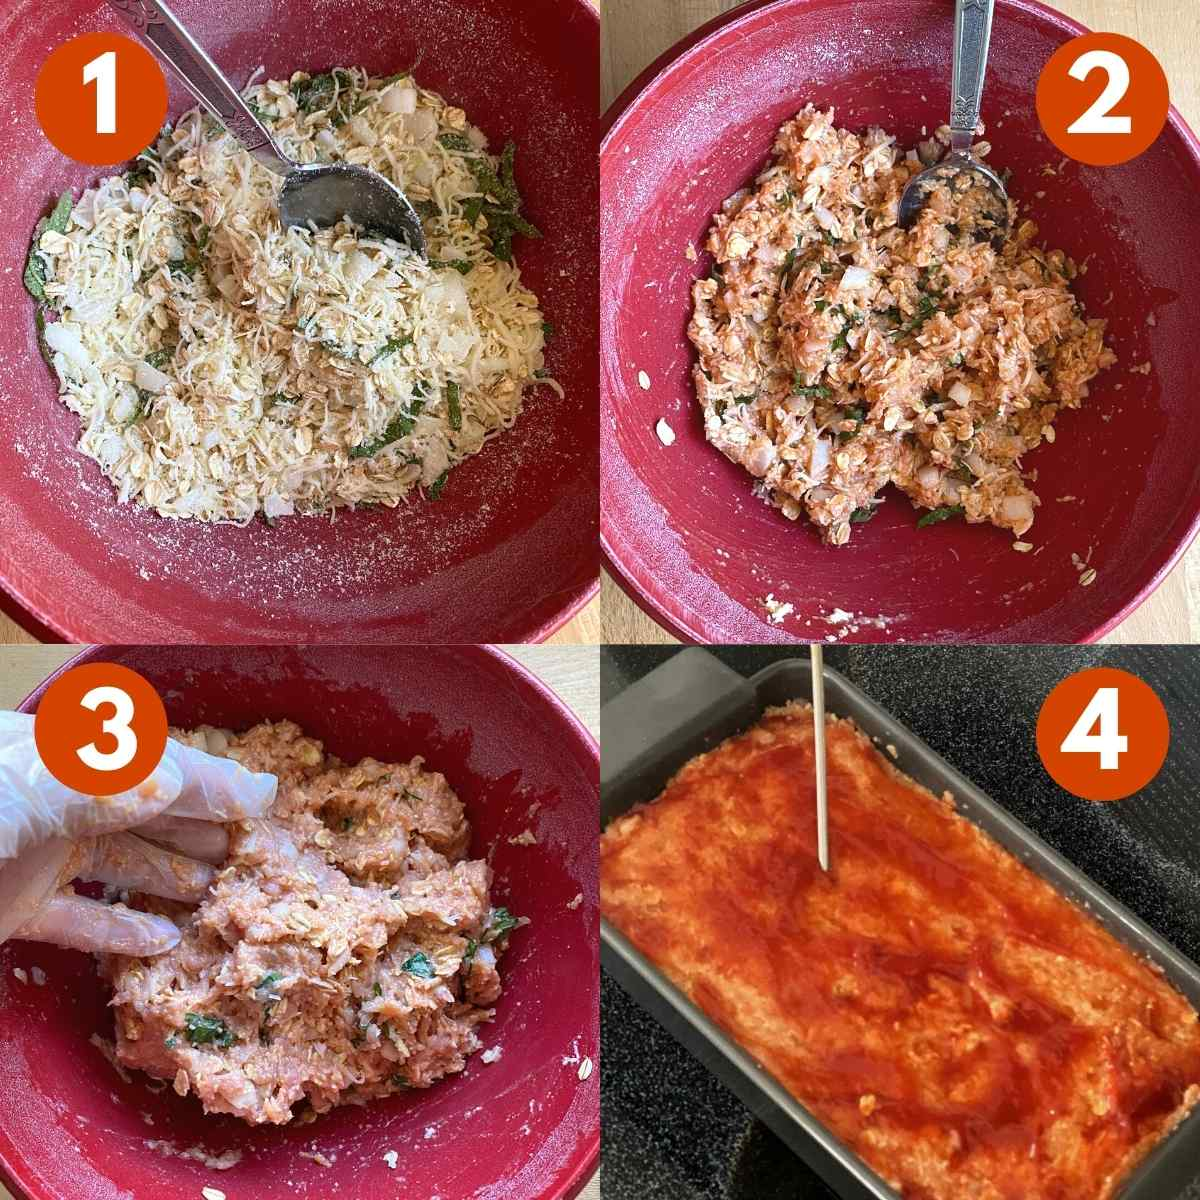 Picture Collage of 4 steps to make the recipe.